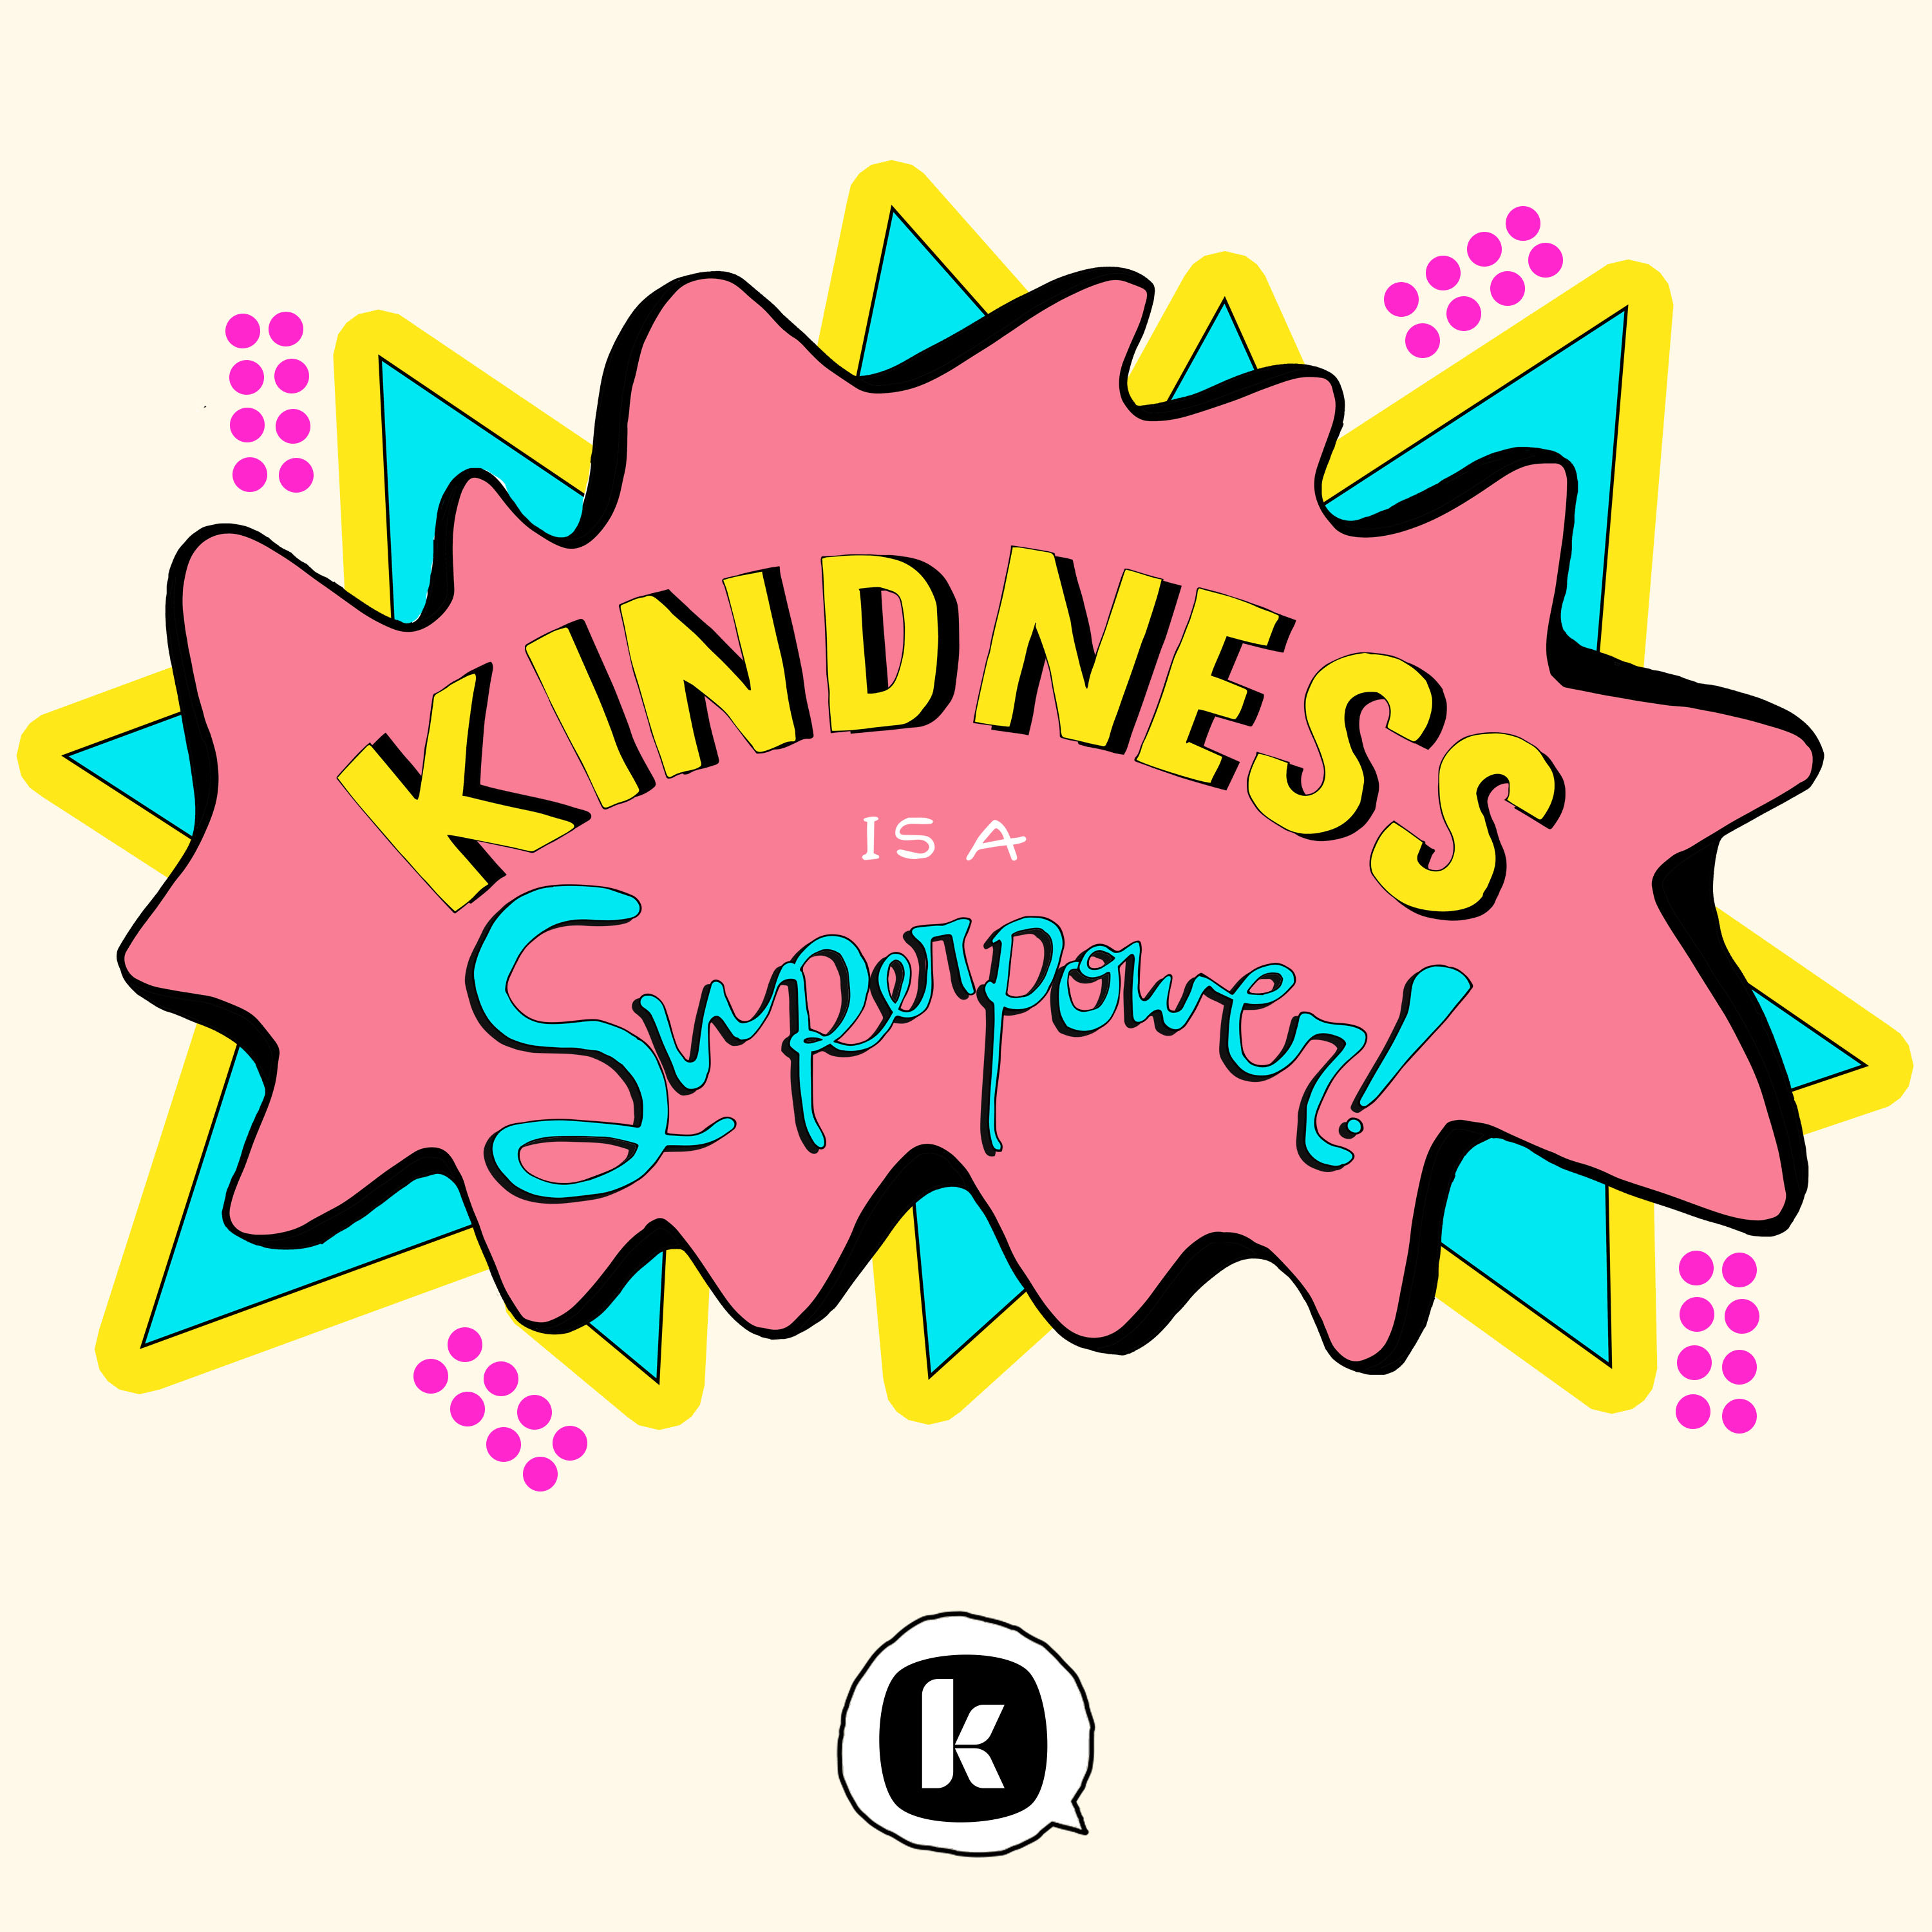 7 Random Acts Of Kindness Ideas For Kids